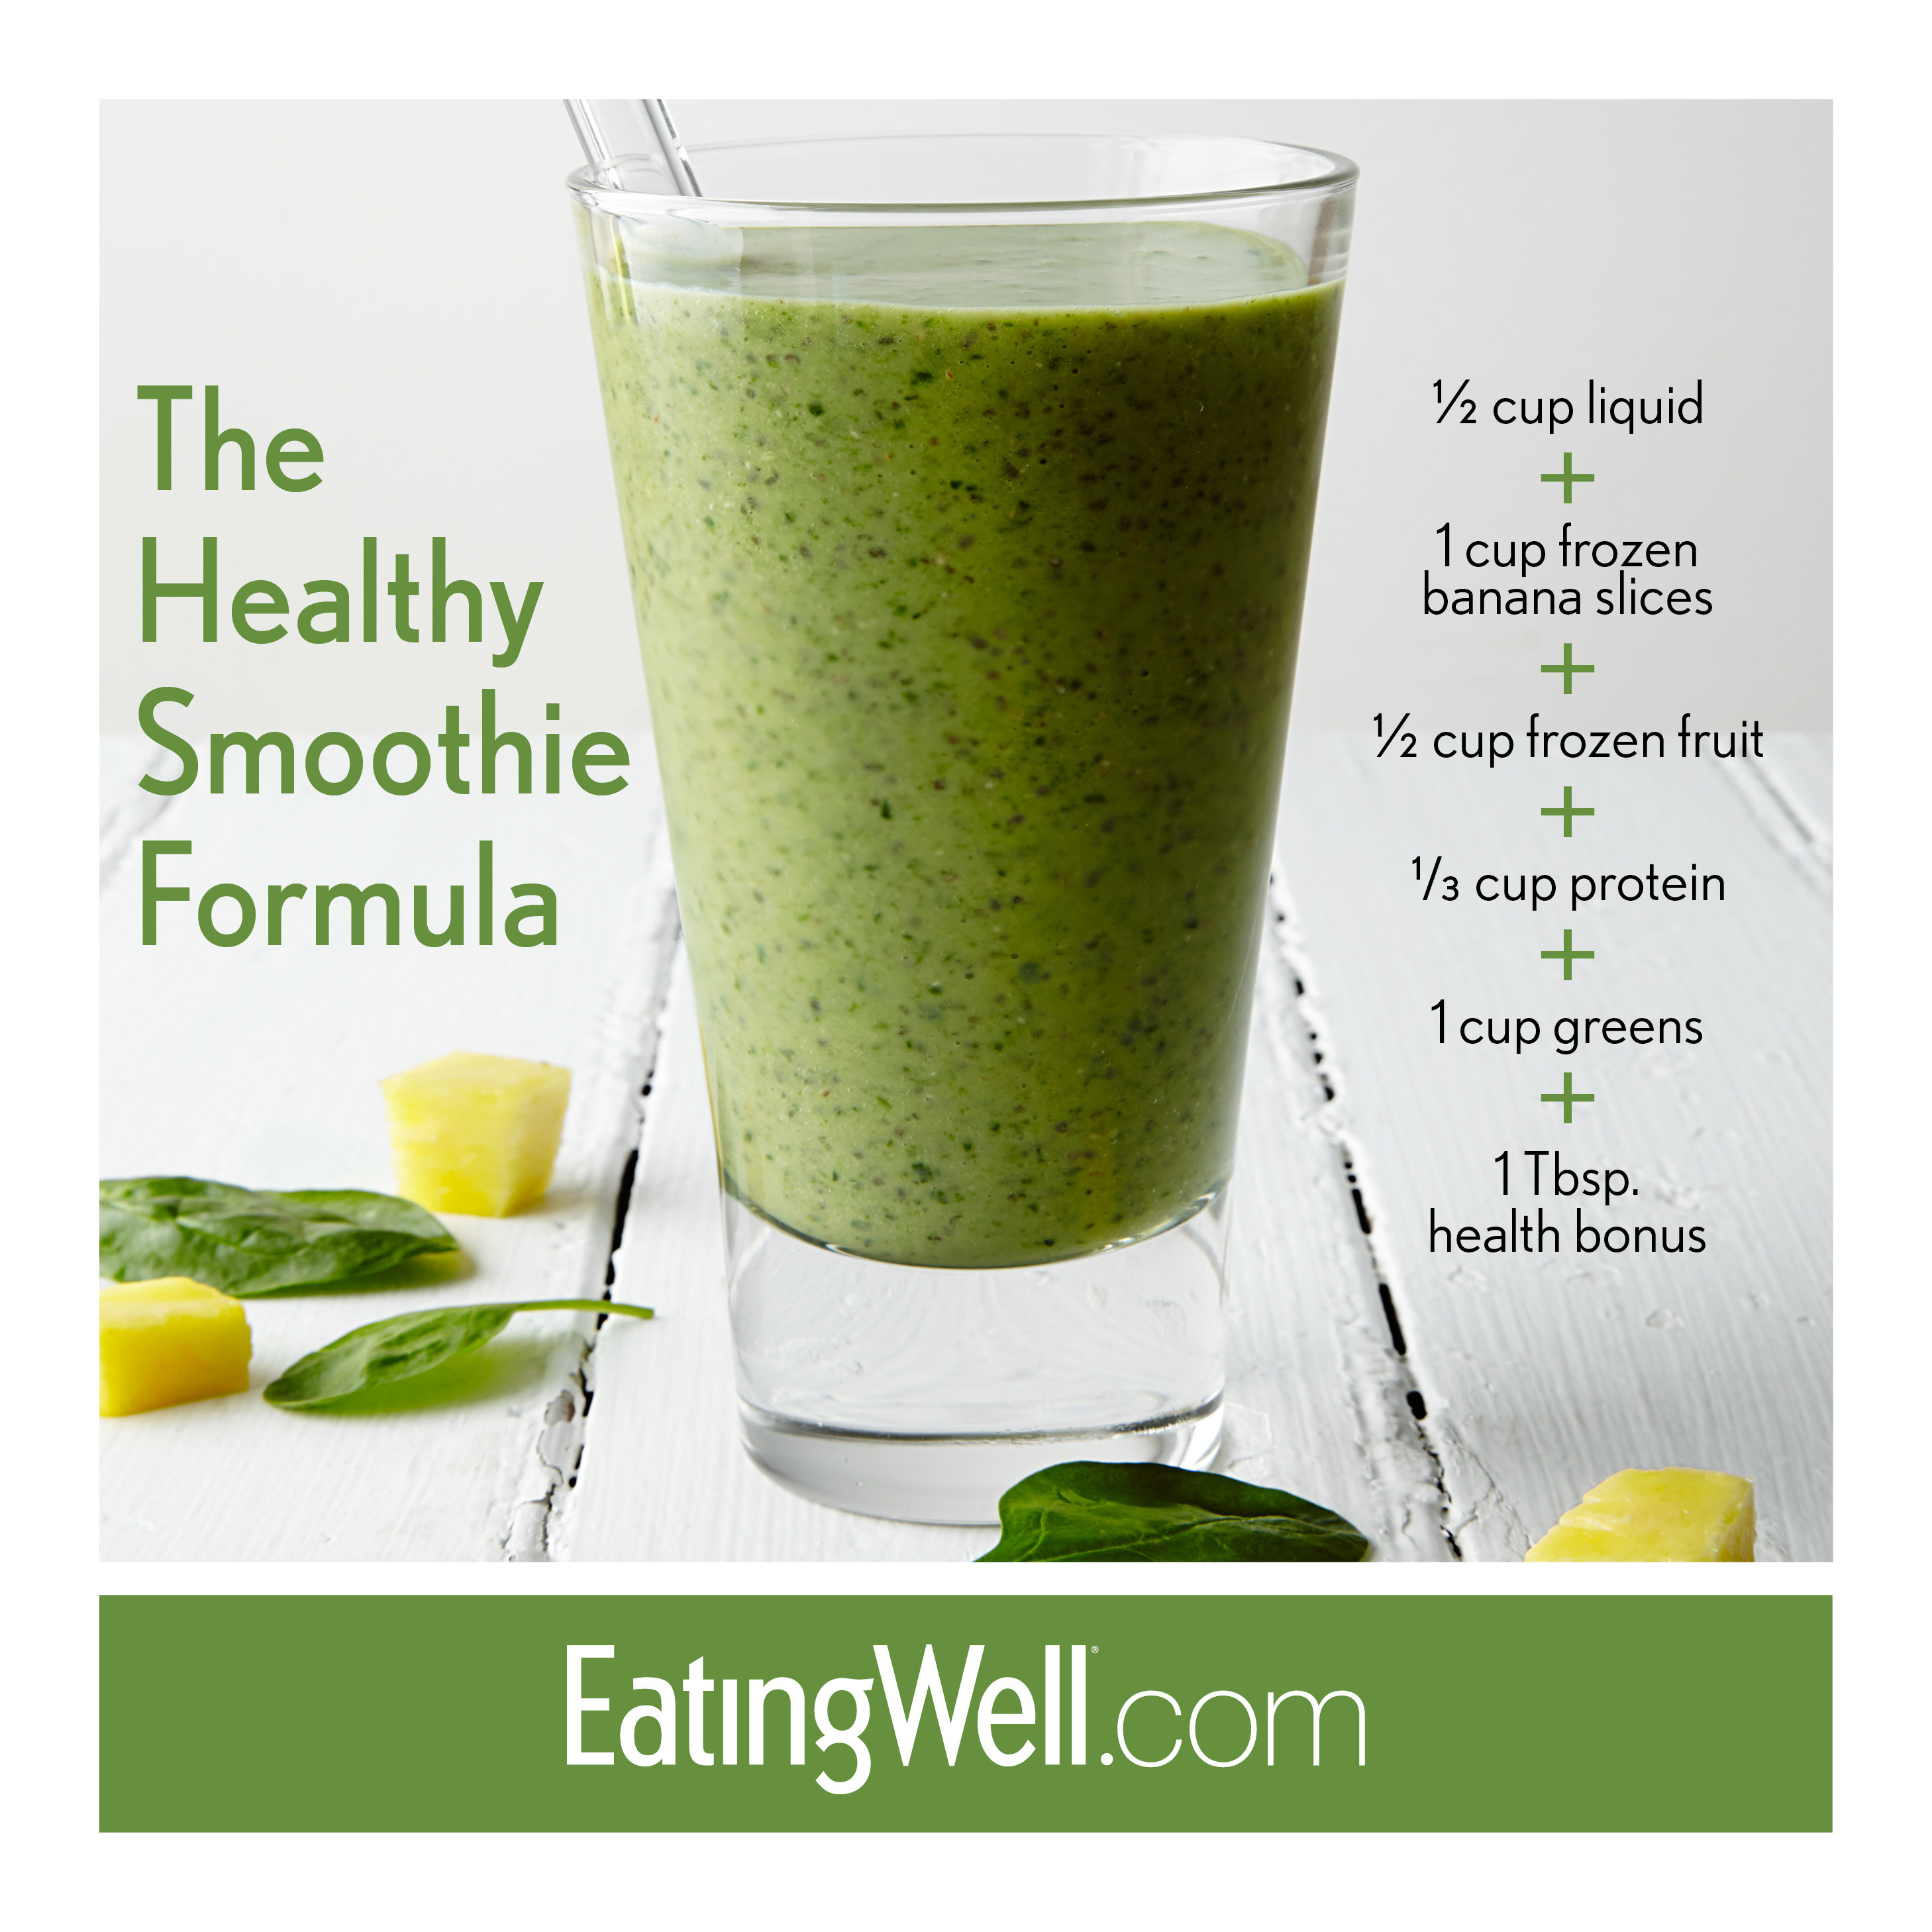 Smoothie Recipes Healthy  The Ultimate Green Smoothie Recipe EatingWell